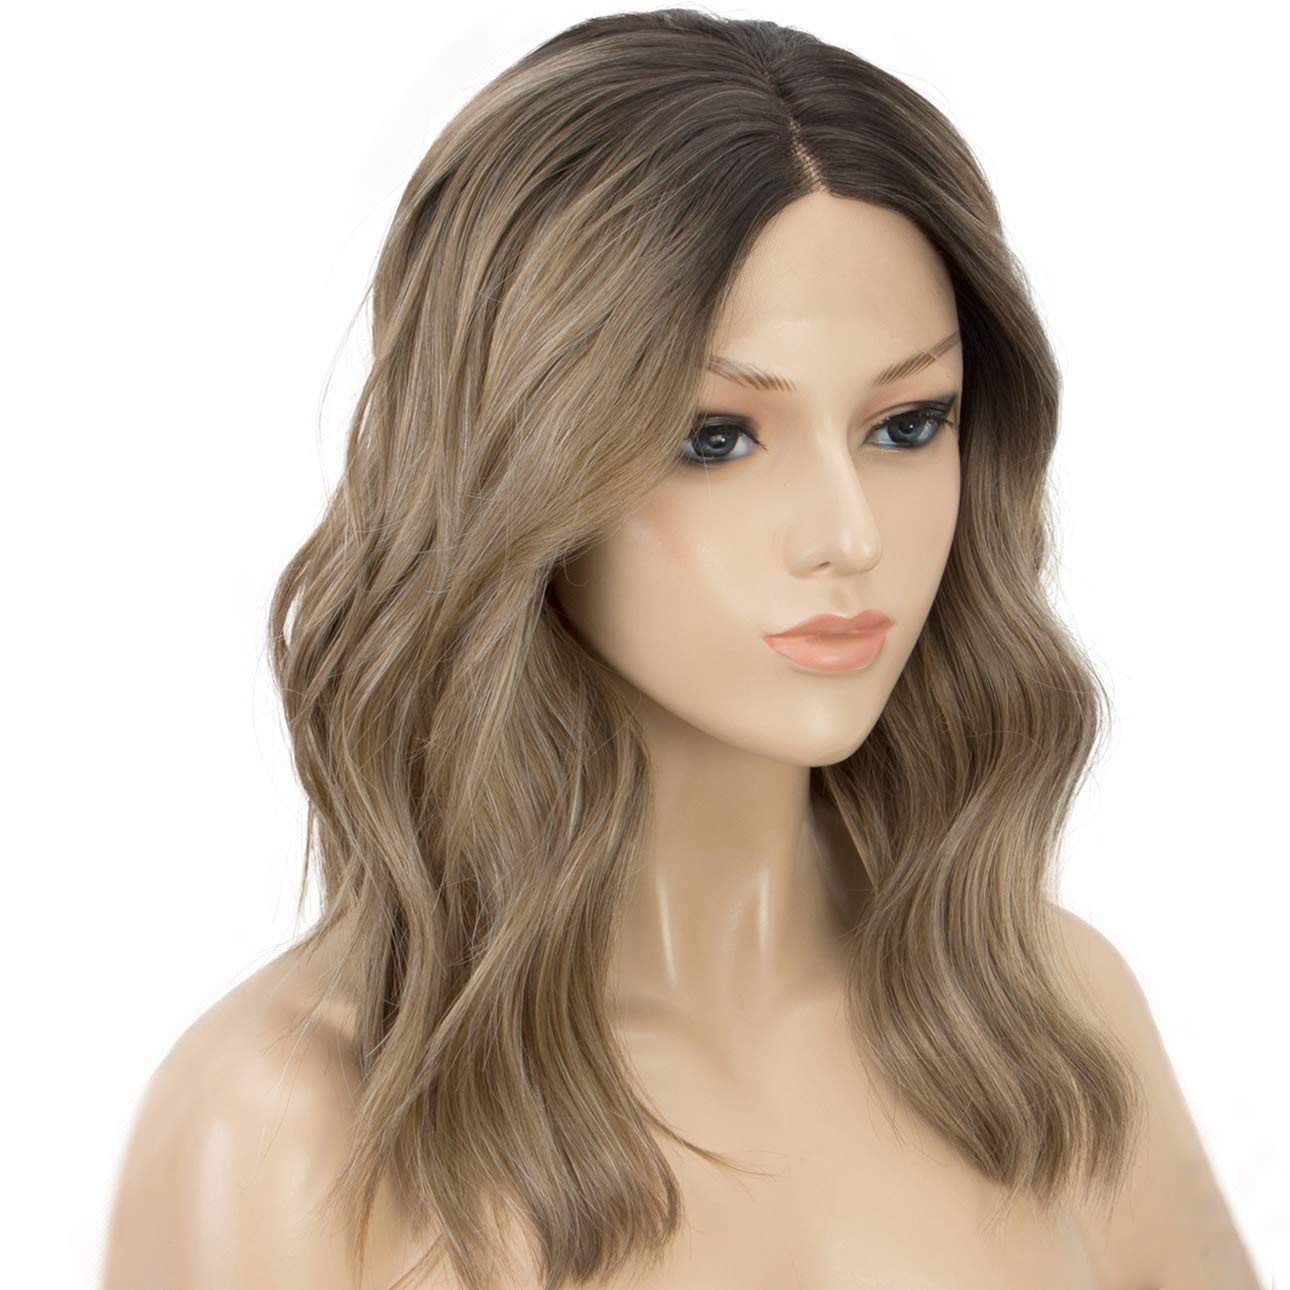 K'ryssma Short Bob Lace Front Wigs Wavy Ash Brown Ombre Synthetic Wig with Black Roots Middle Parting Half Hand Tied Heat Resistant by K'ryssma